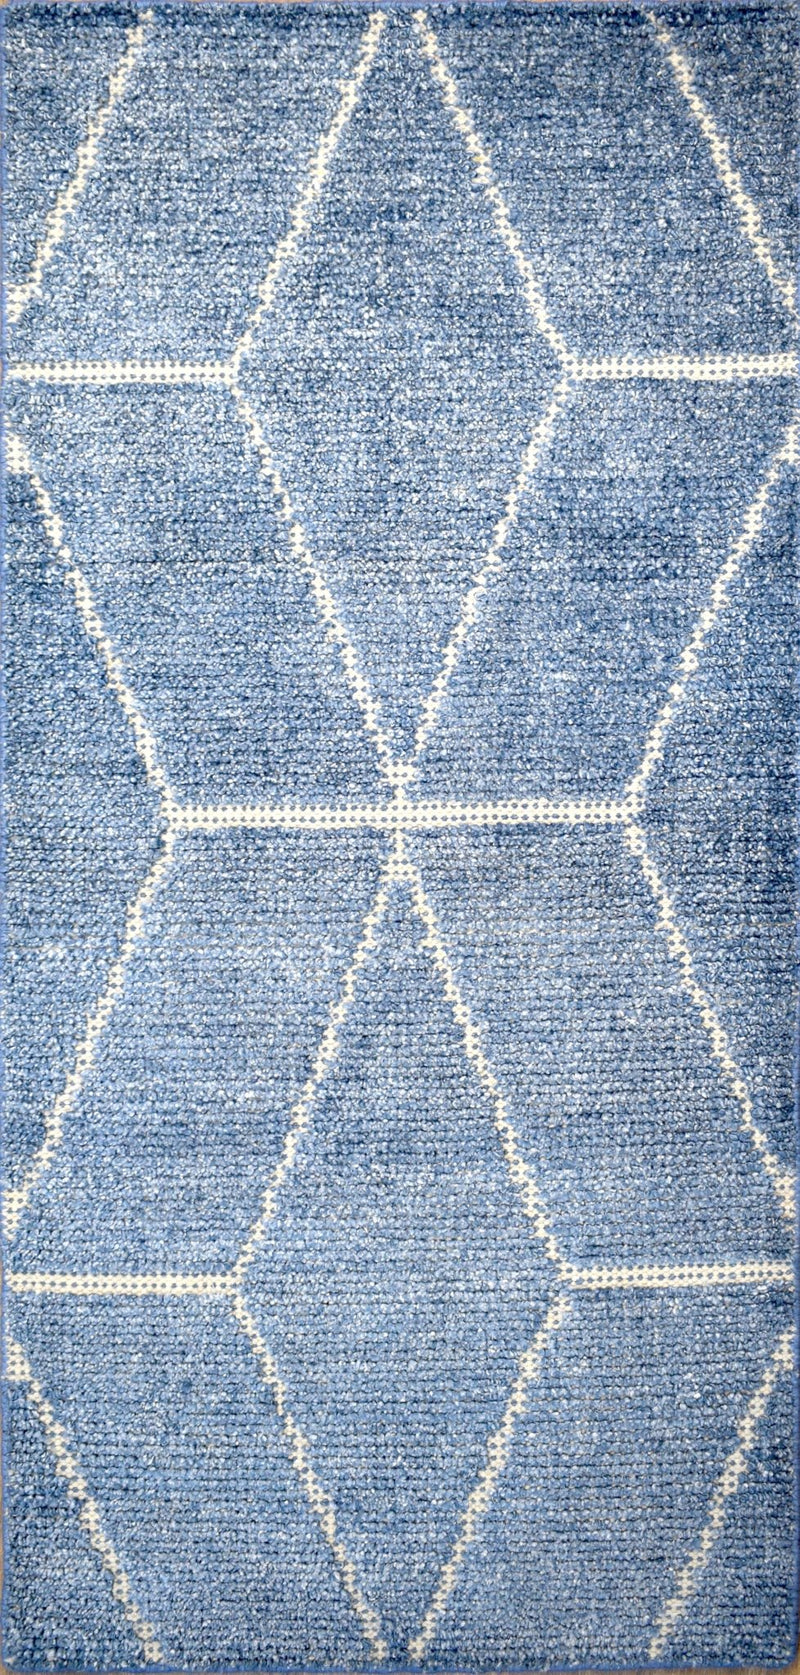 Modern Hand made Bamboo Silk 2' by 4' Area Rug |The Rug Decor |TRD312024 - The Rug Decor